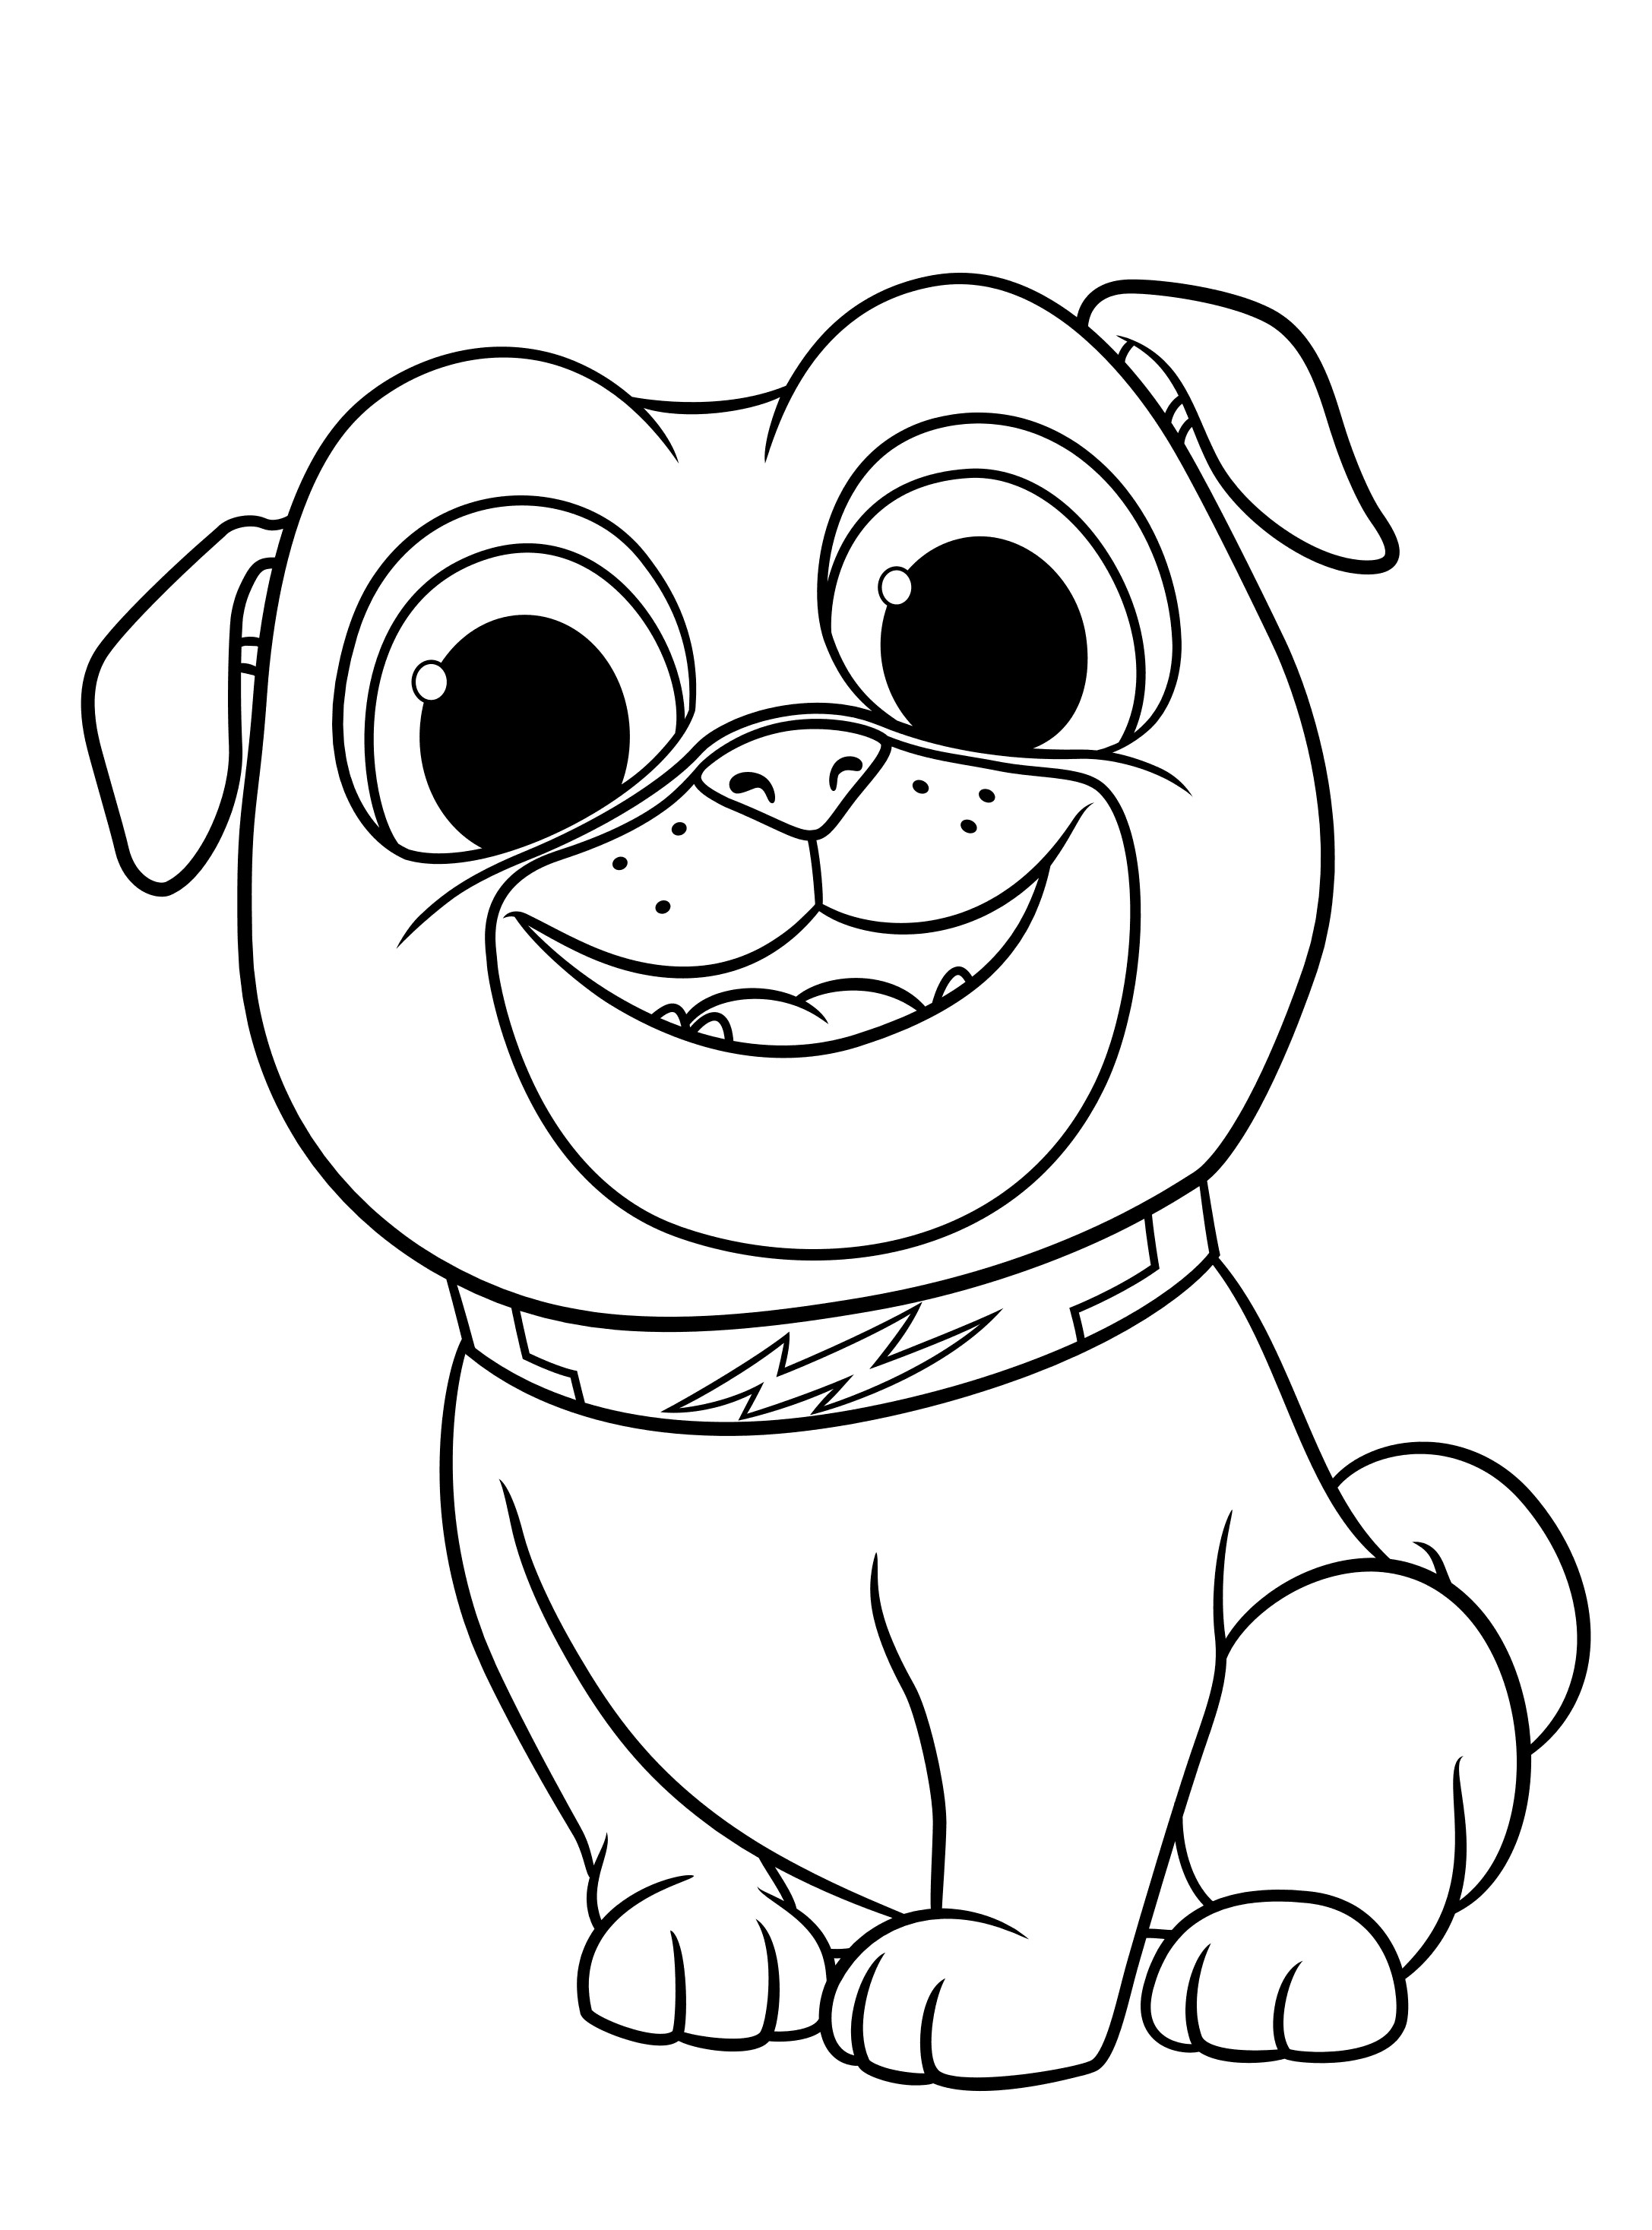 coloring puppy dog pals easy puppy dog pals coloring pages free to print for coloring puppy dog pals